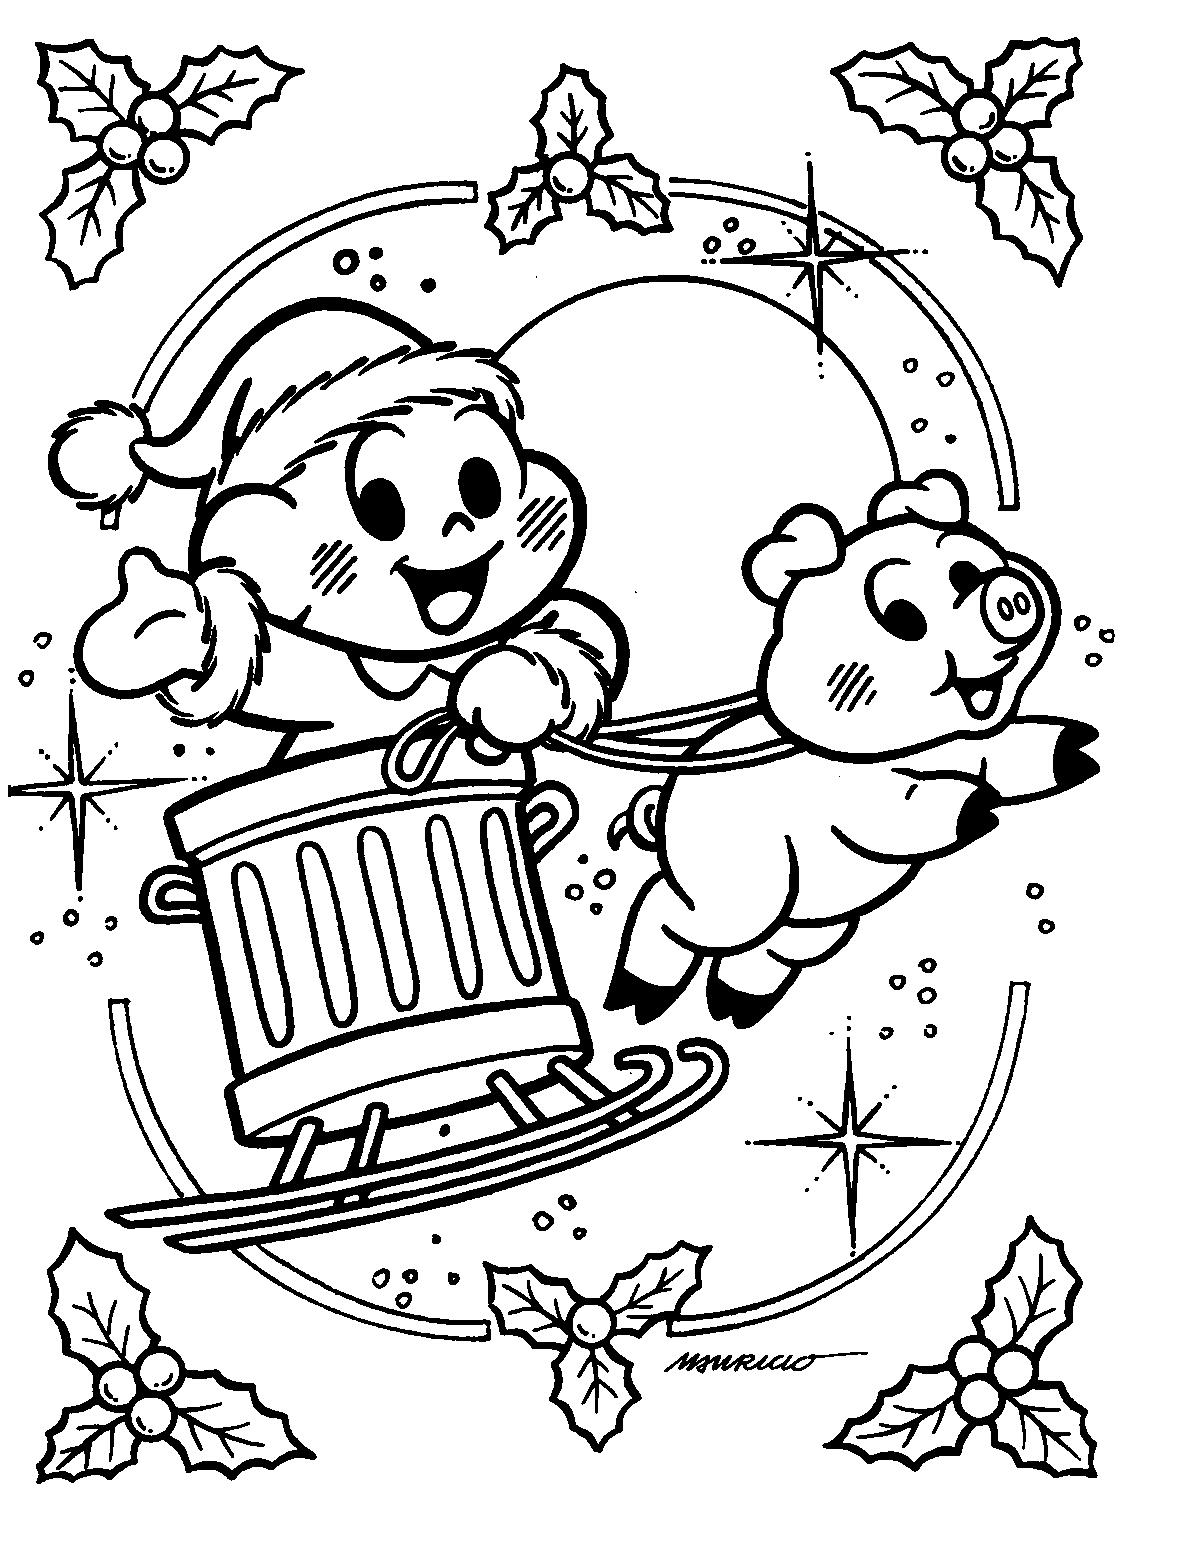 Polar Express Ticket Black And White Printable | Search Results ...